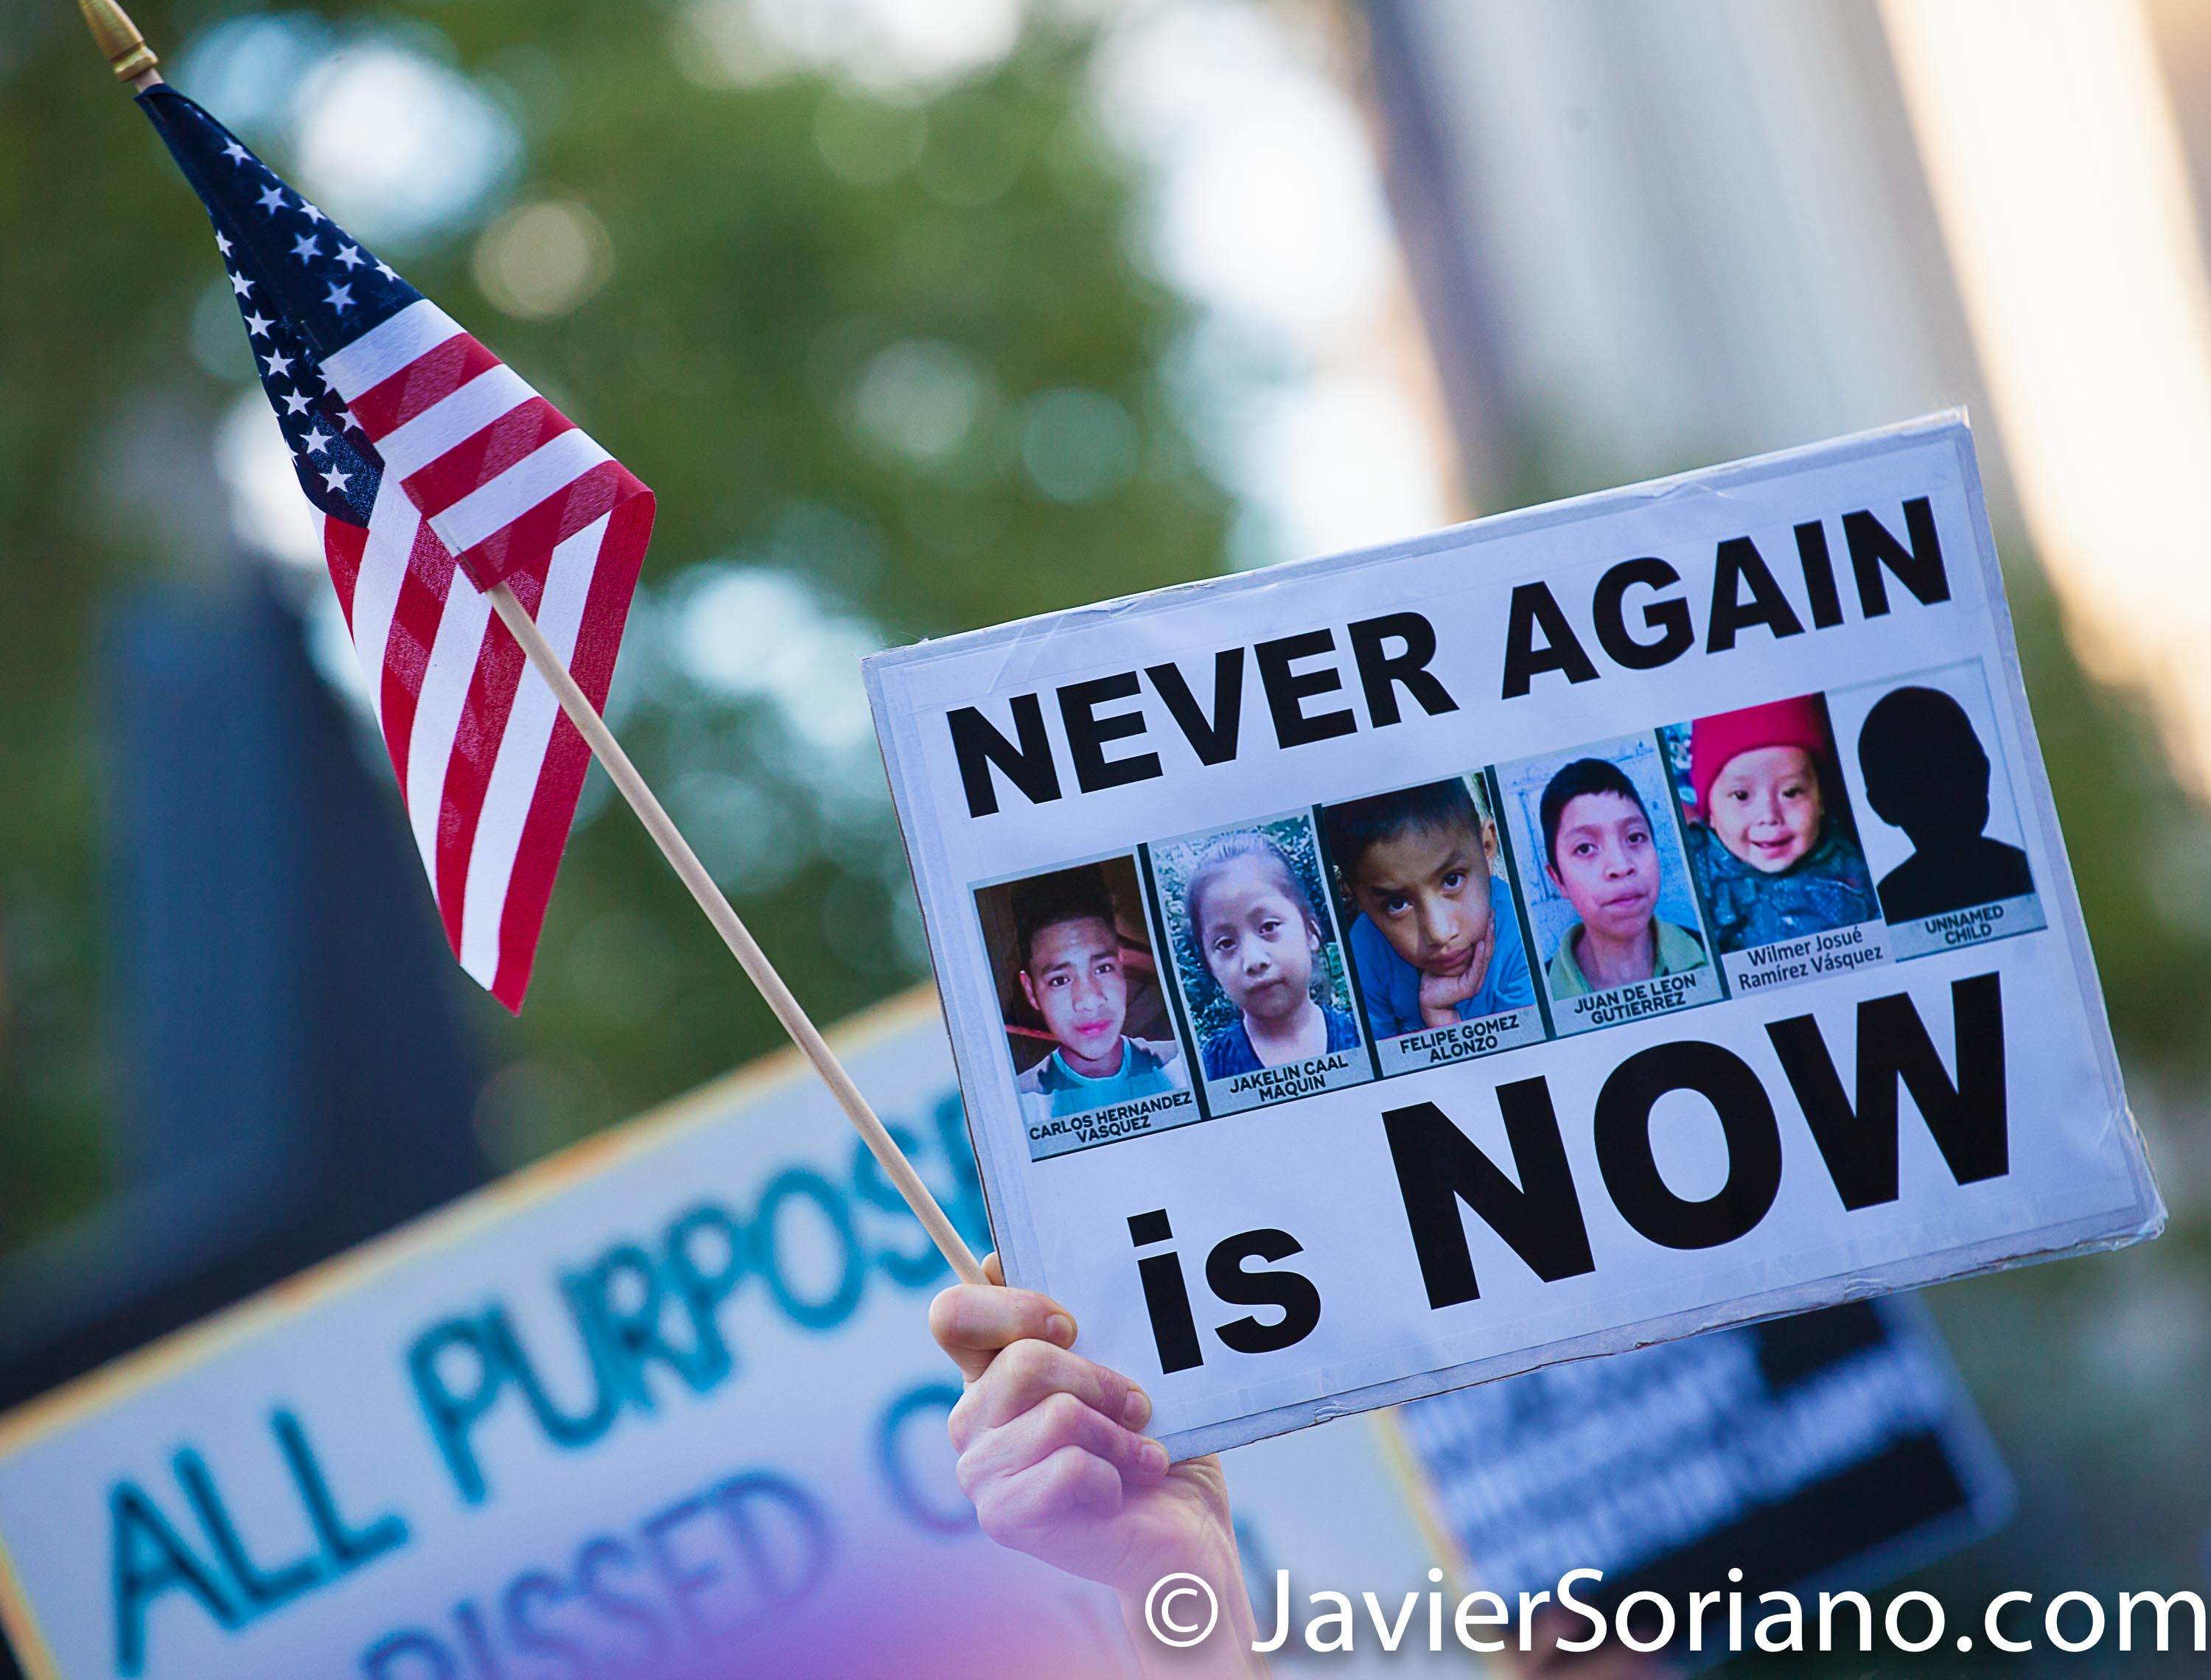 New York City – People gathered at Foley Square Park in Manhattan on Friday, July 12, 2019, to demand action from Congress to end concentration camps in the United States of America and impeach President Donald Trump. Photo by Javier Soriano/www.JavierSoriano.com